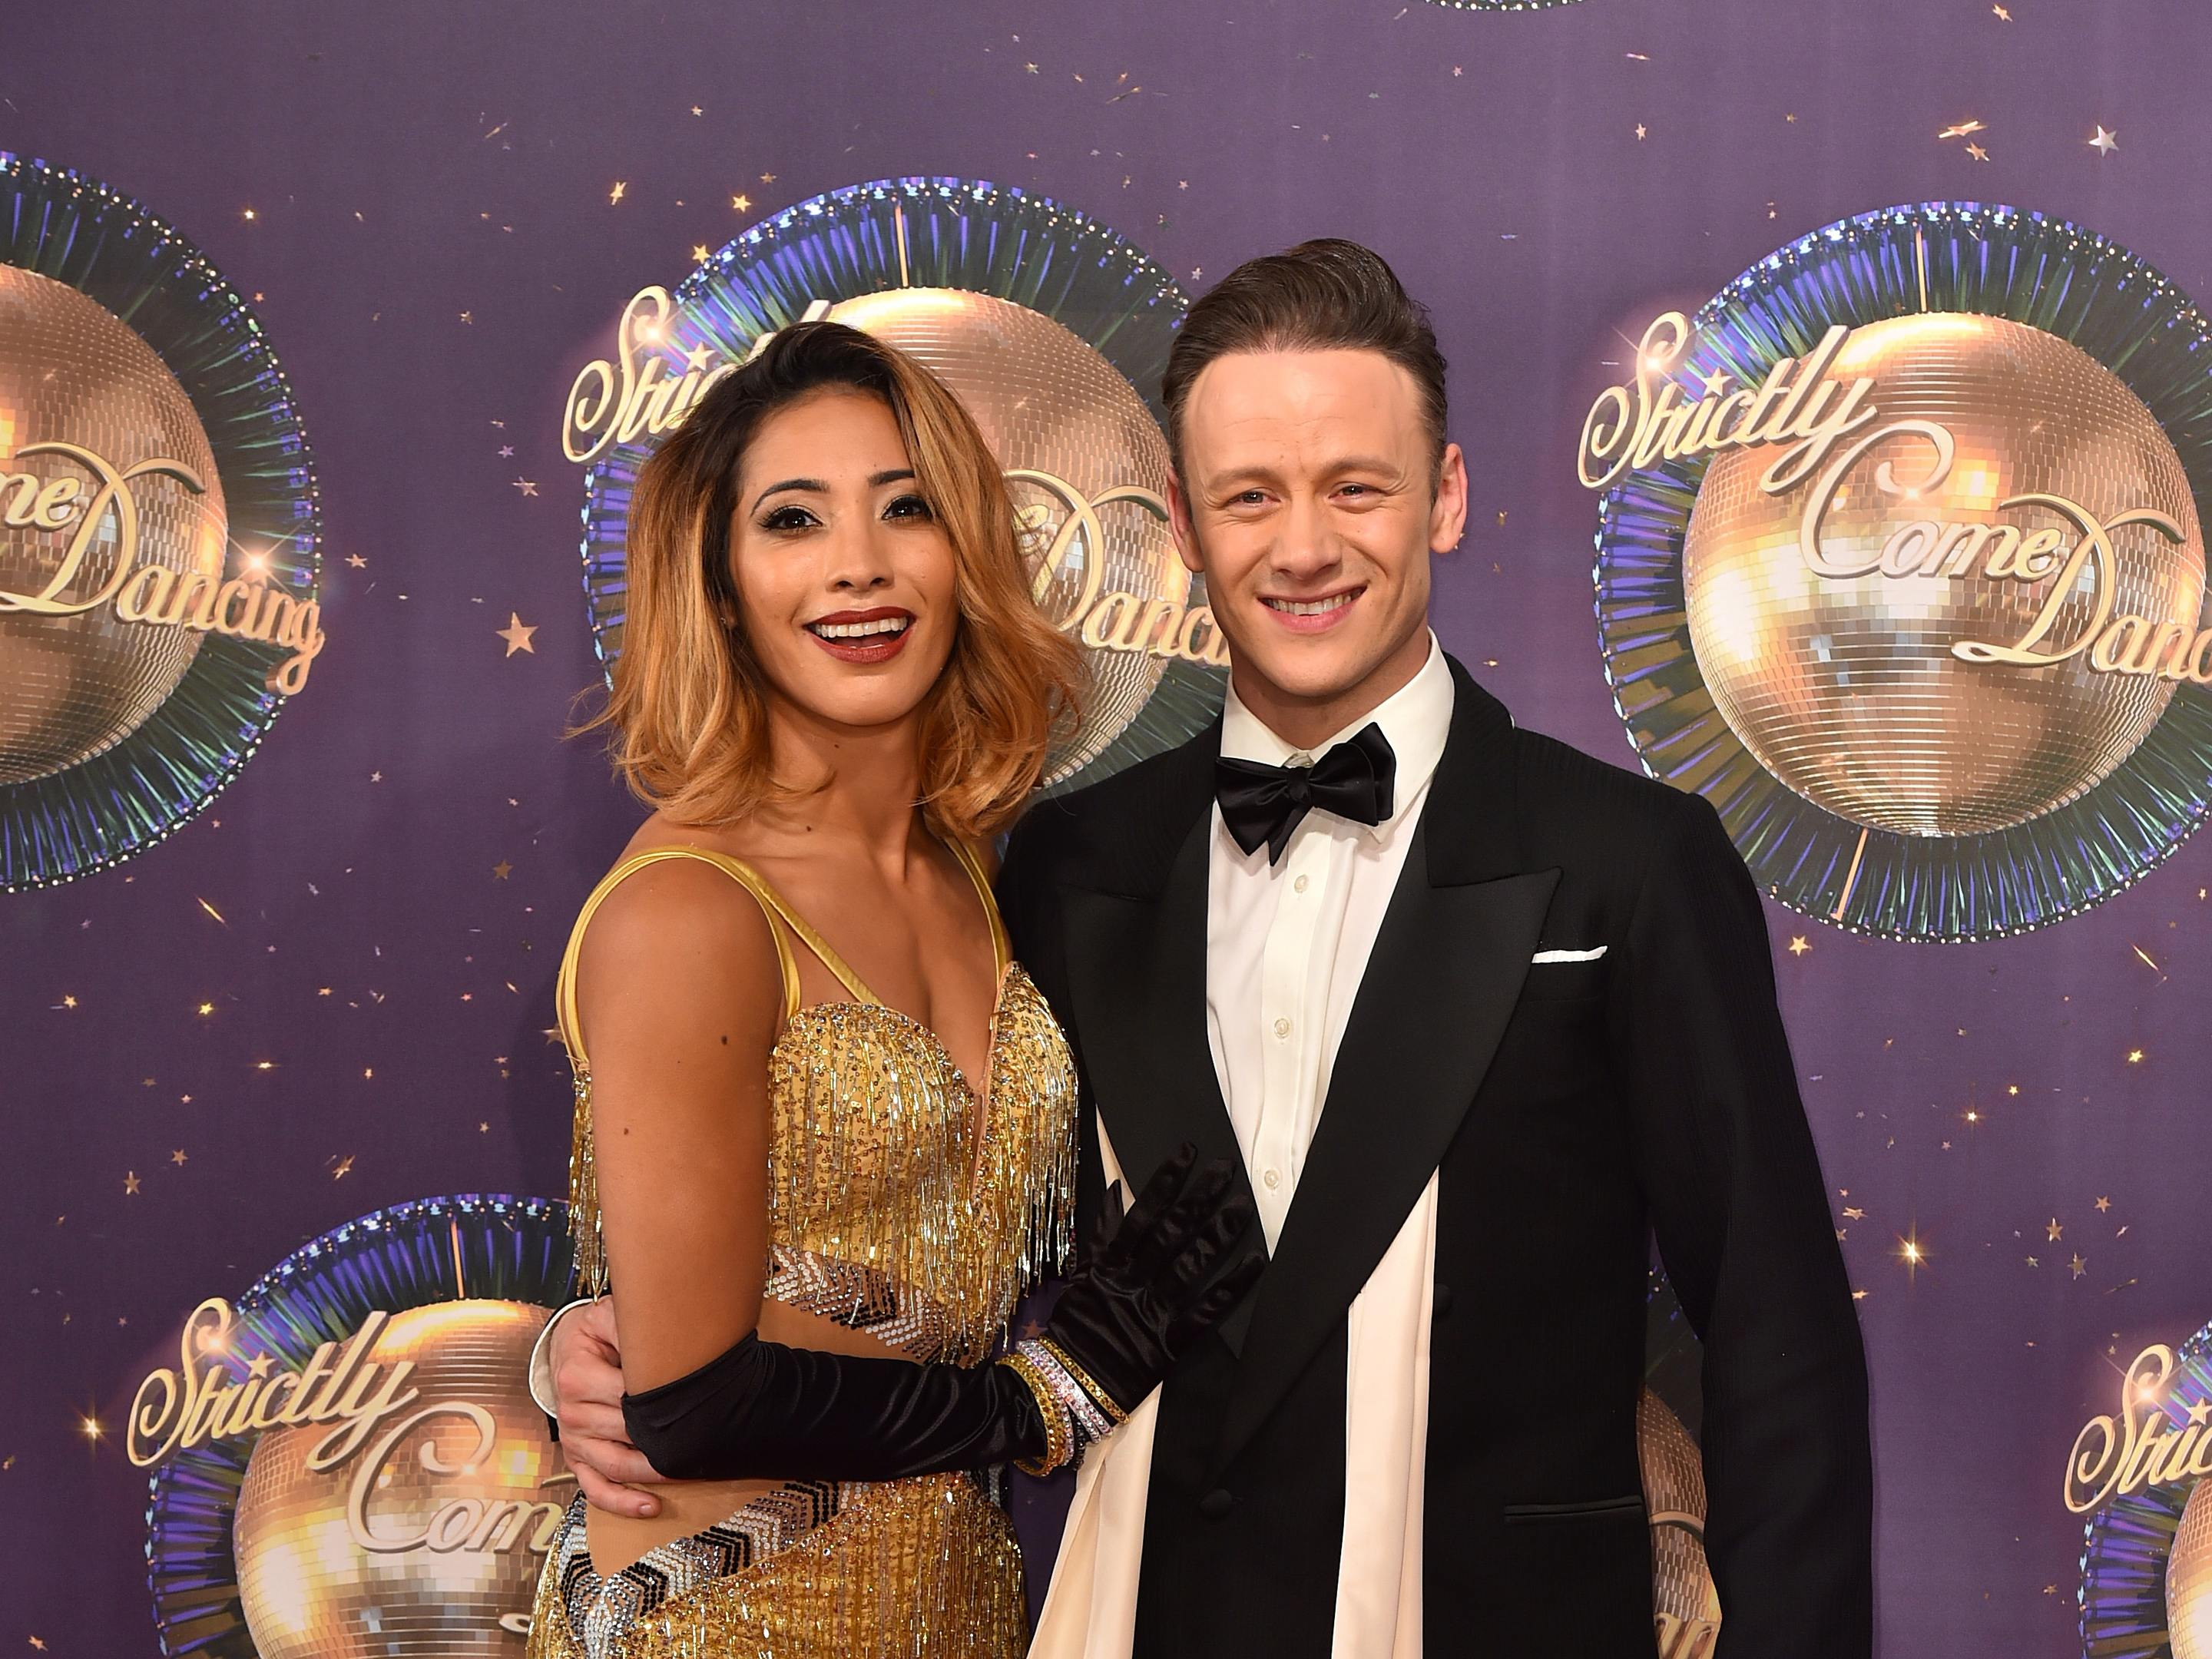 Strictly Come Dancing's Karen and Kevin Clifton announce split after three years of marriage